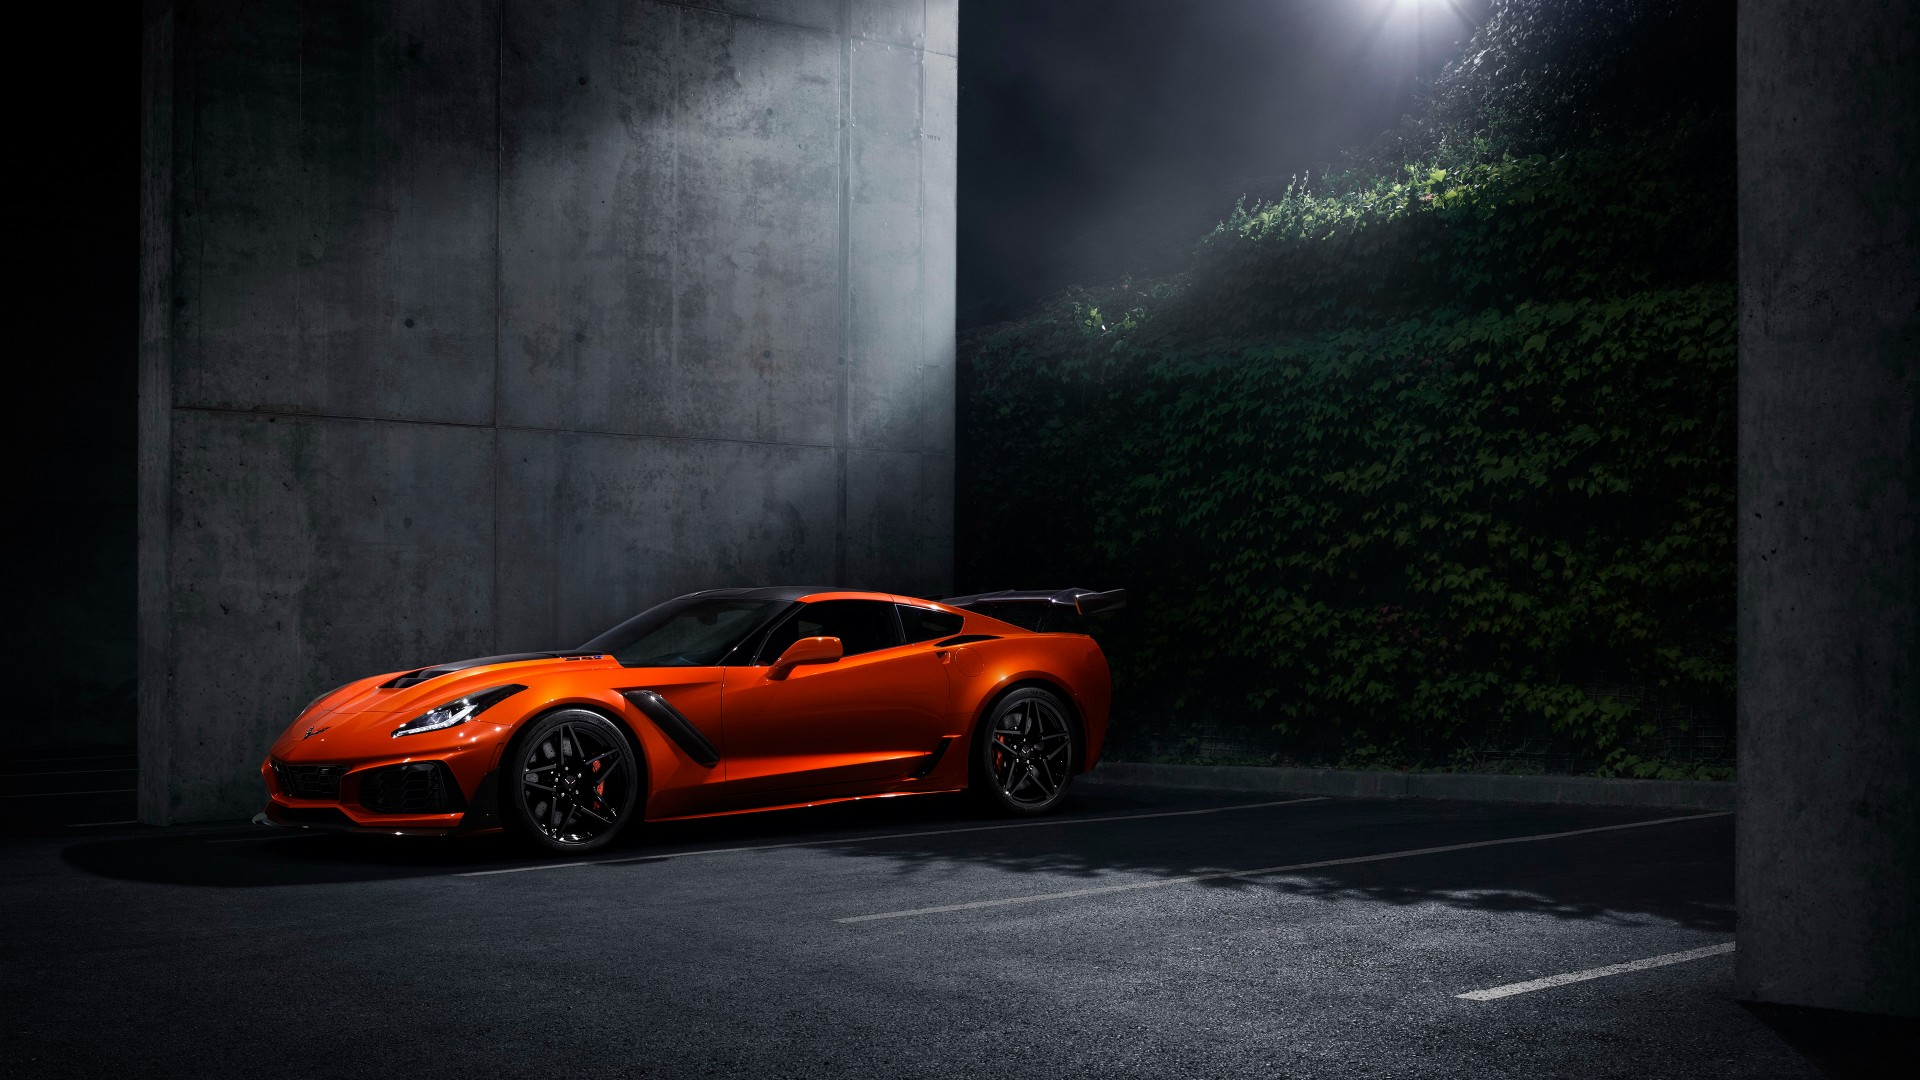 Anime Wallpaper For Ipad 2019 Chevrolet Corvette Zr1 4k Wallpapers Hd Wallpapers